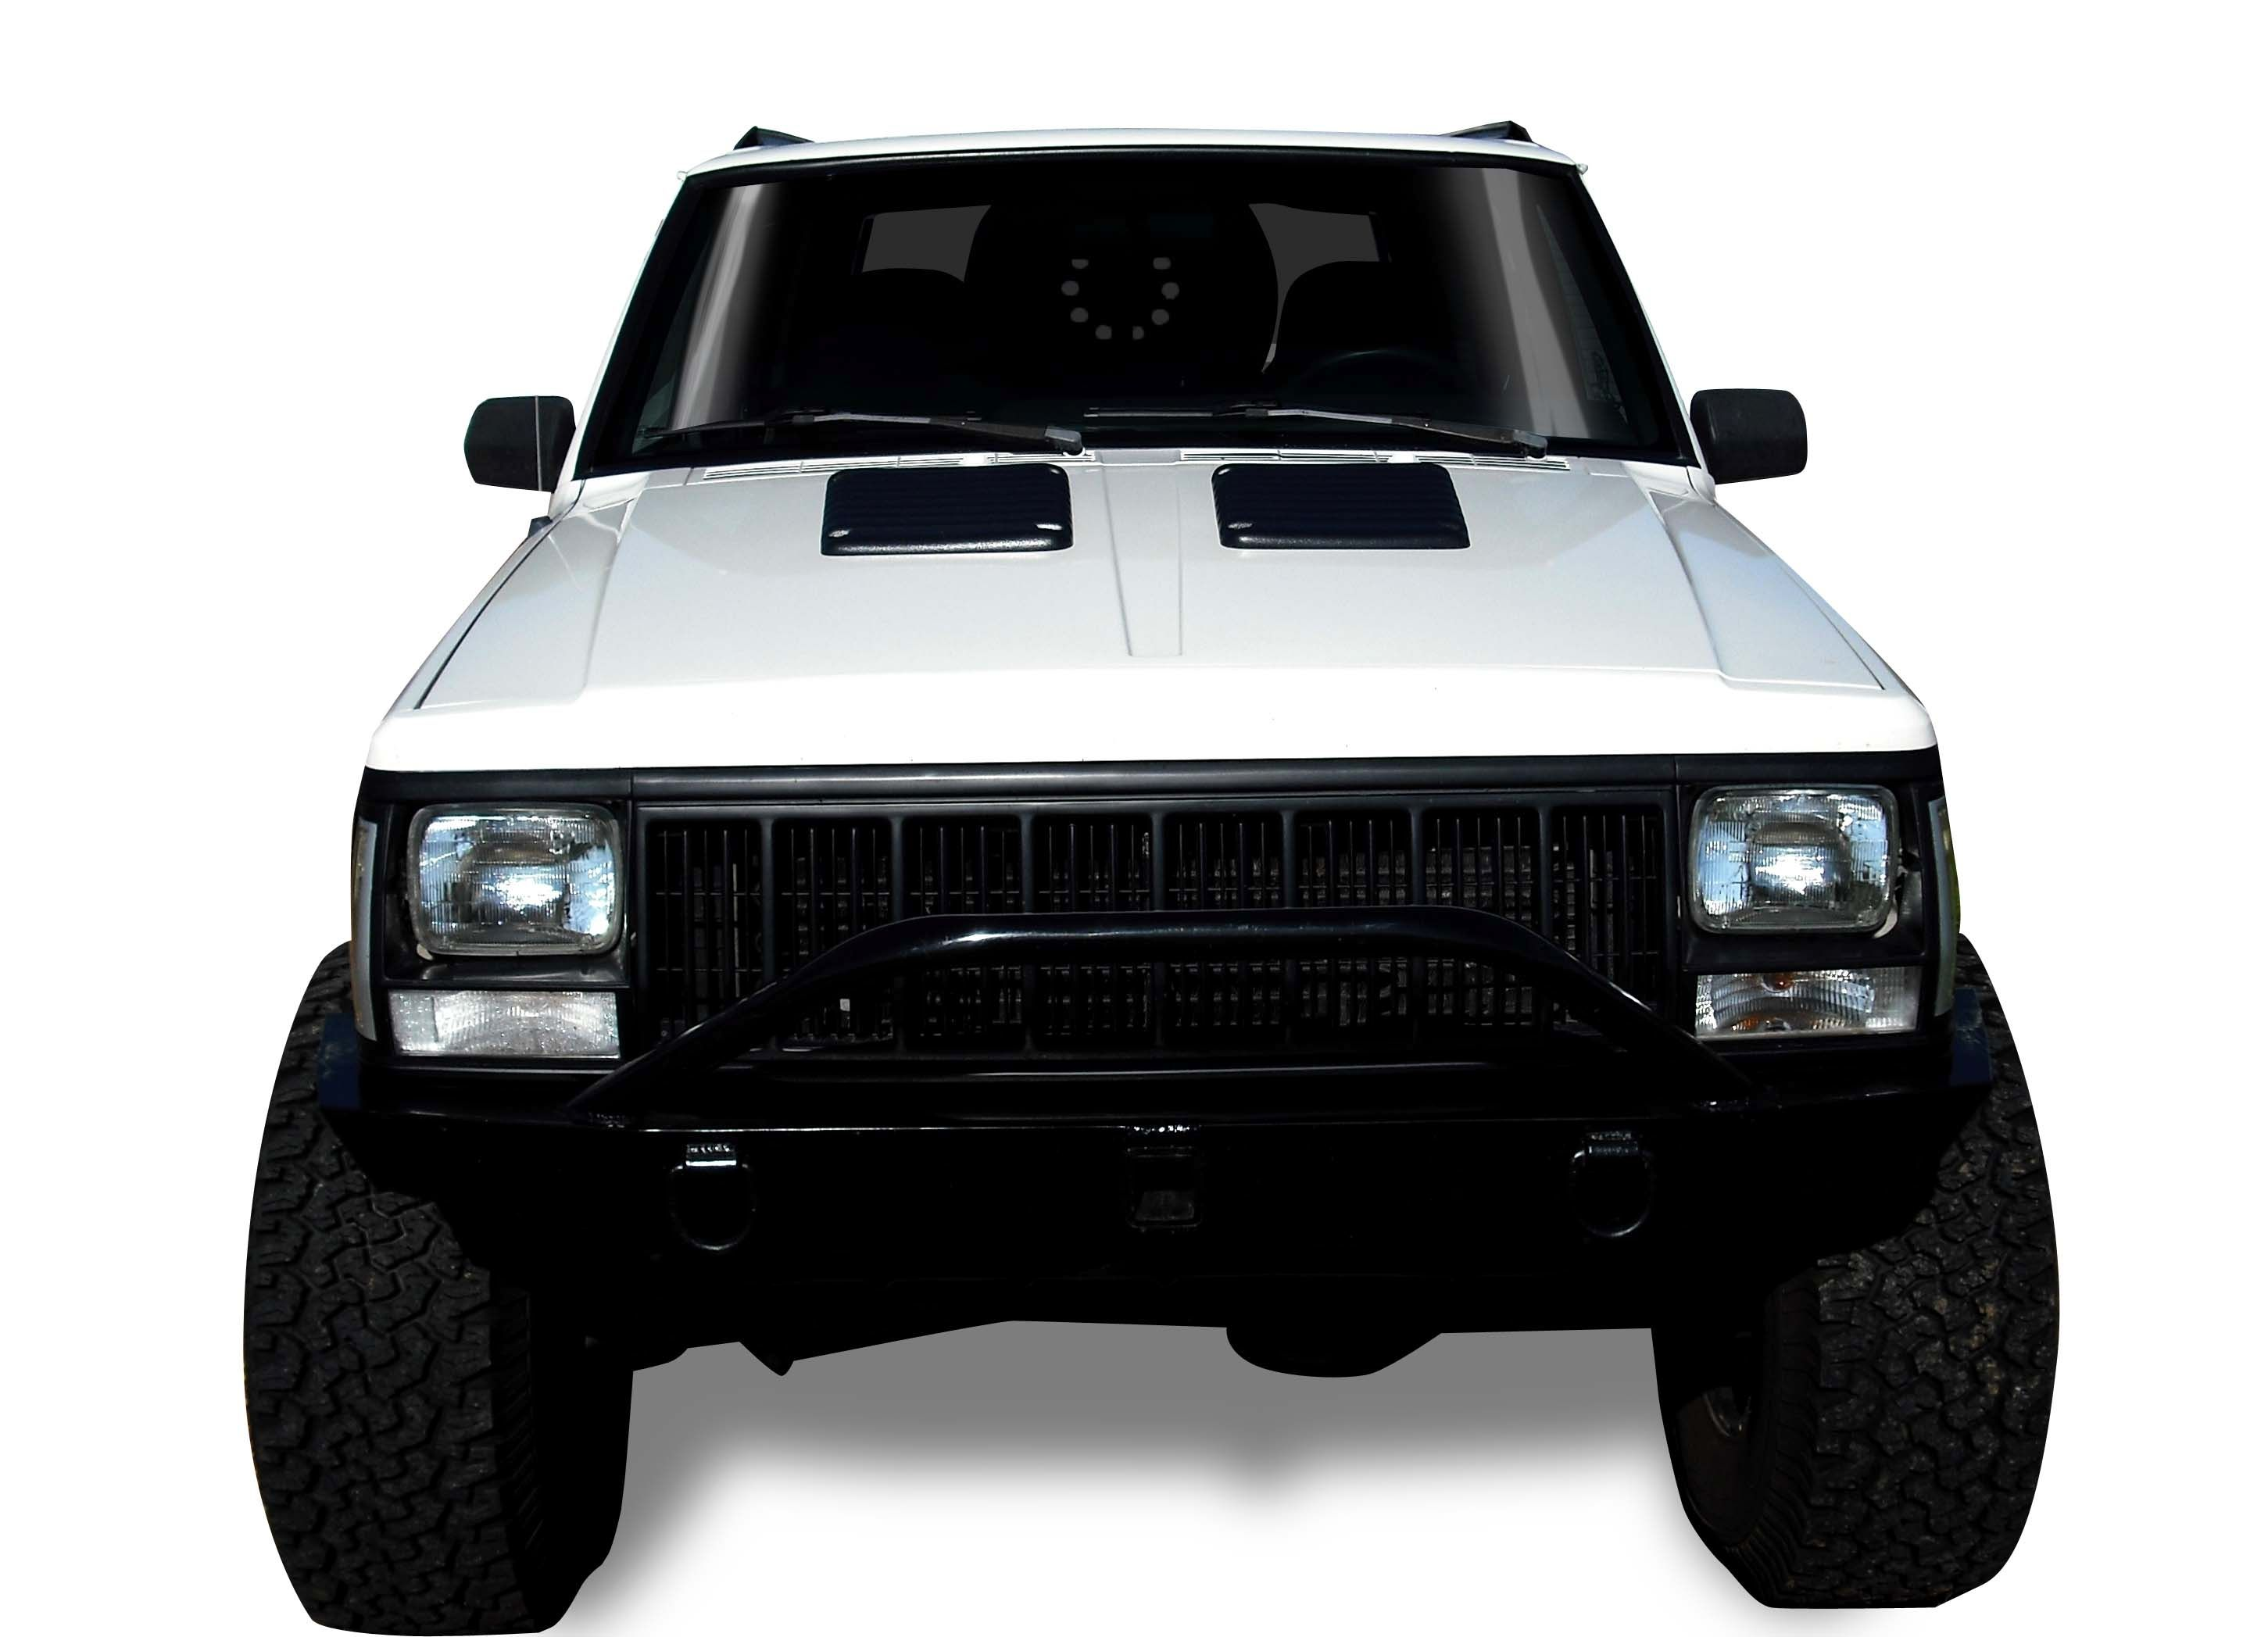 Napier Precision Products Jeep Cherokee Xj Hood Vents Jeep Xj